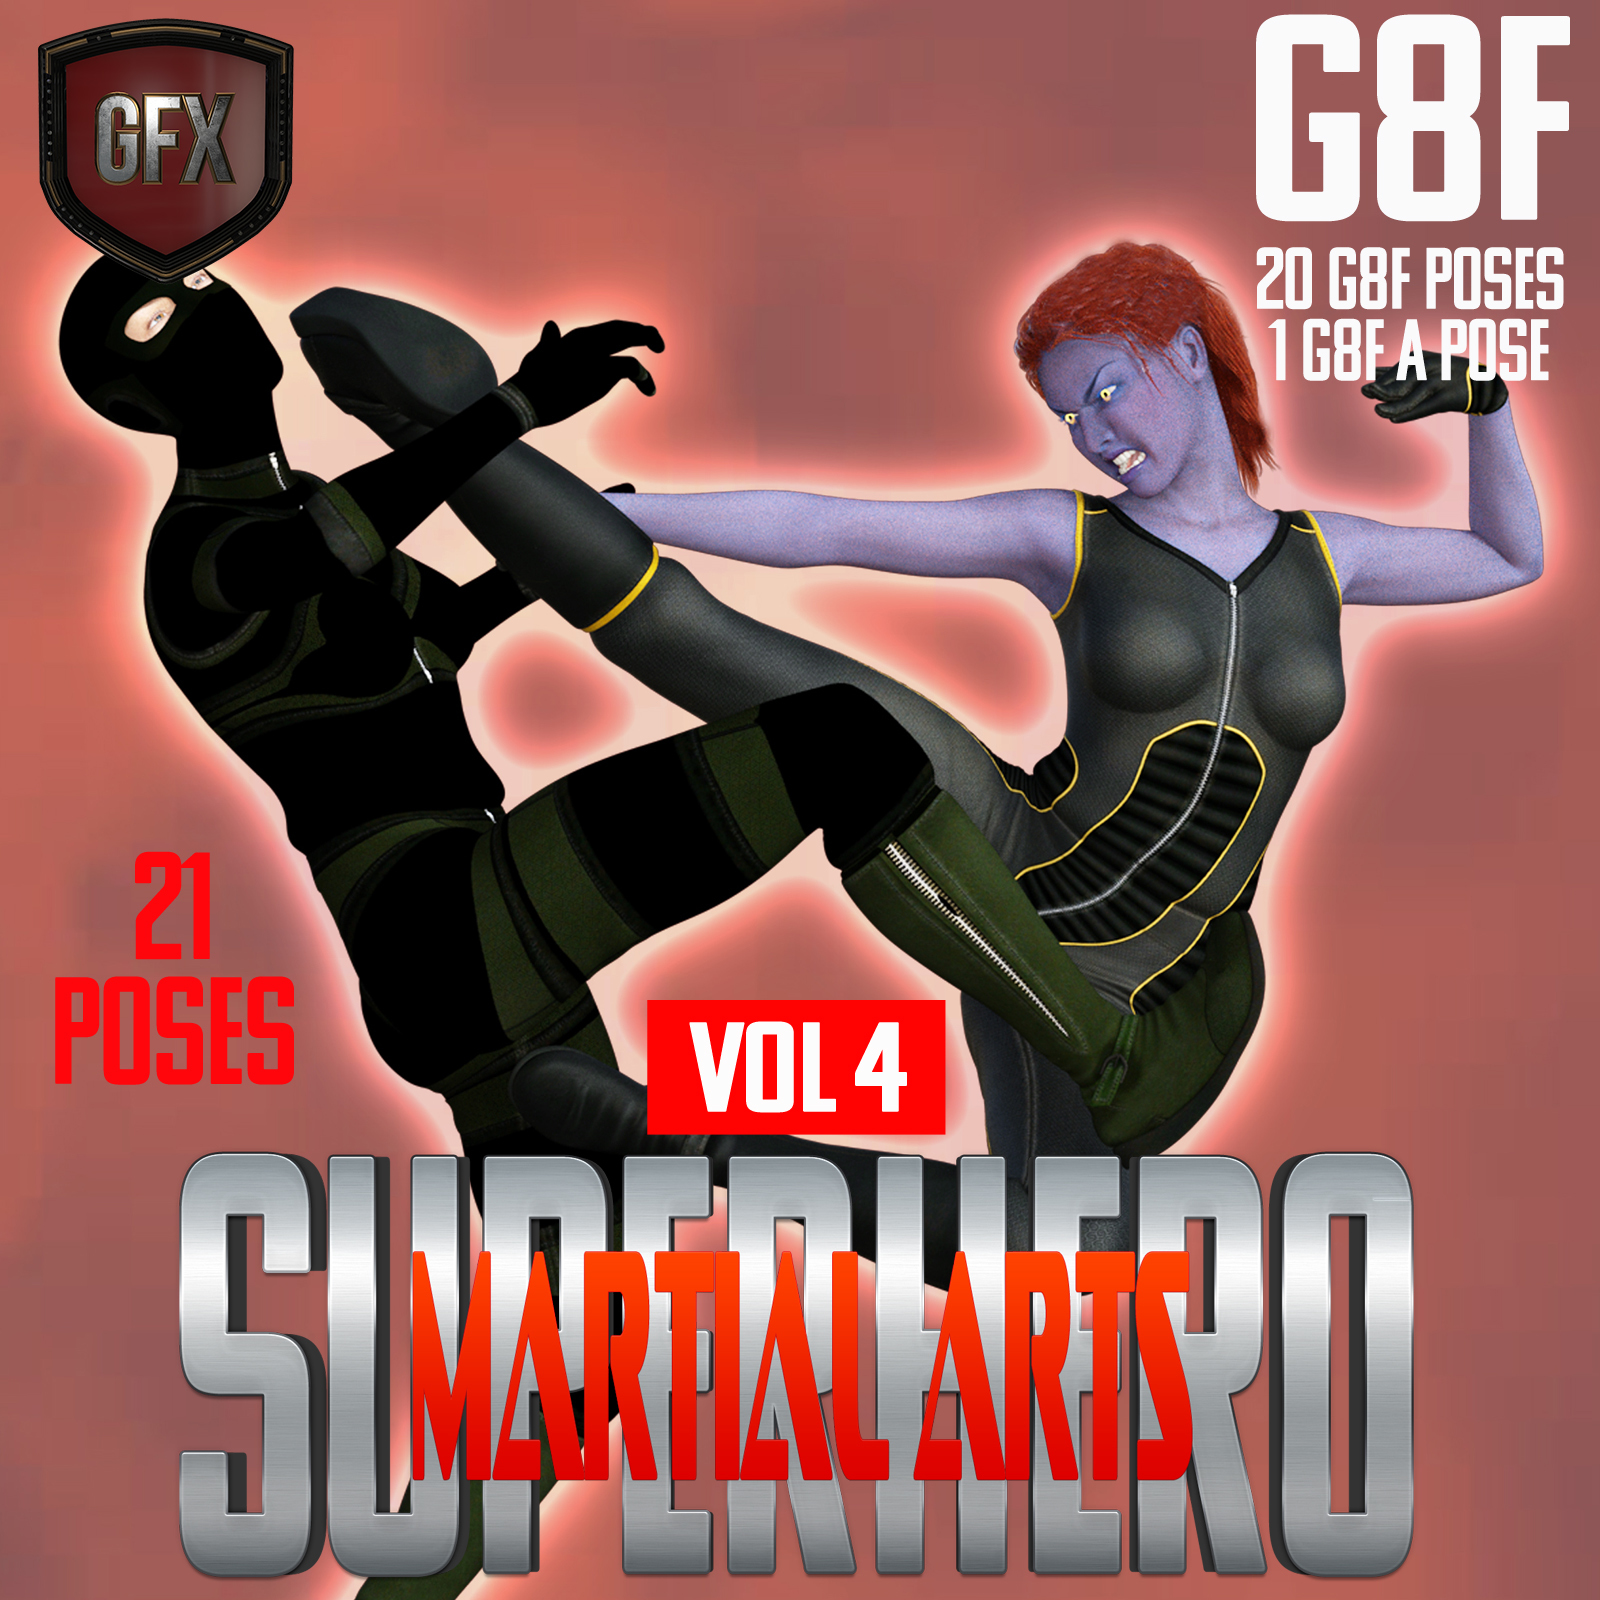 SuperHero Martial Arts for G8F Volume 4 by GriffinFX